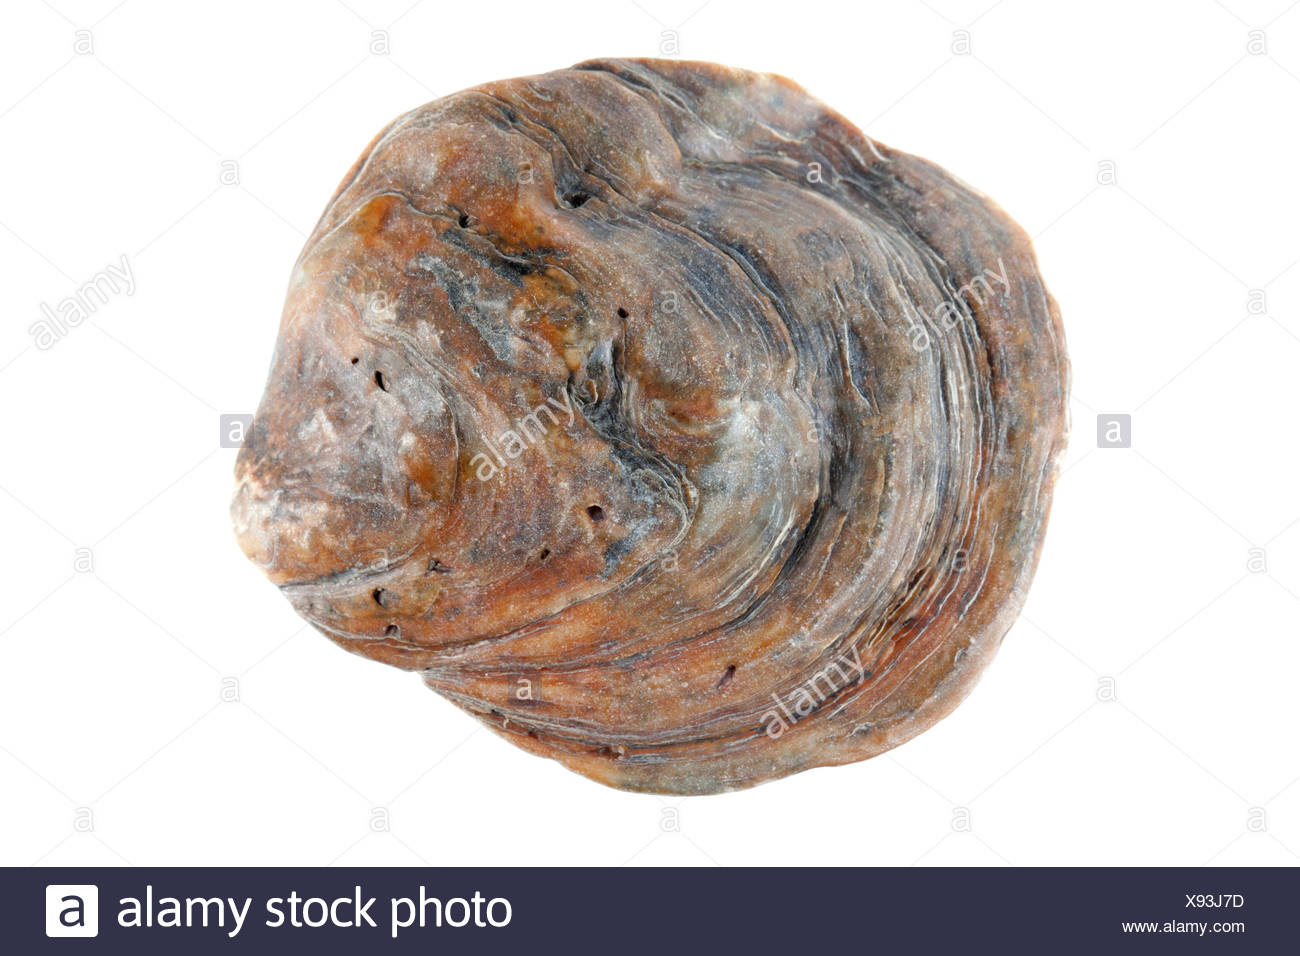 European flat oyster isolated against a white background - Stock Image